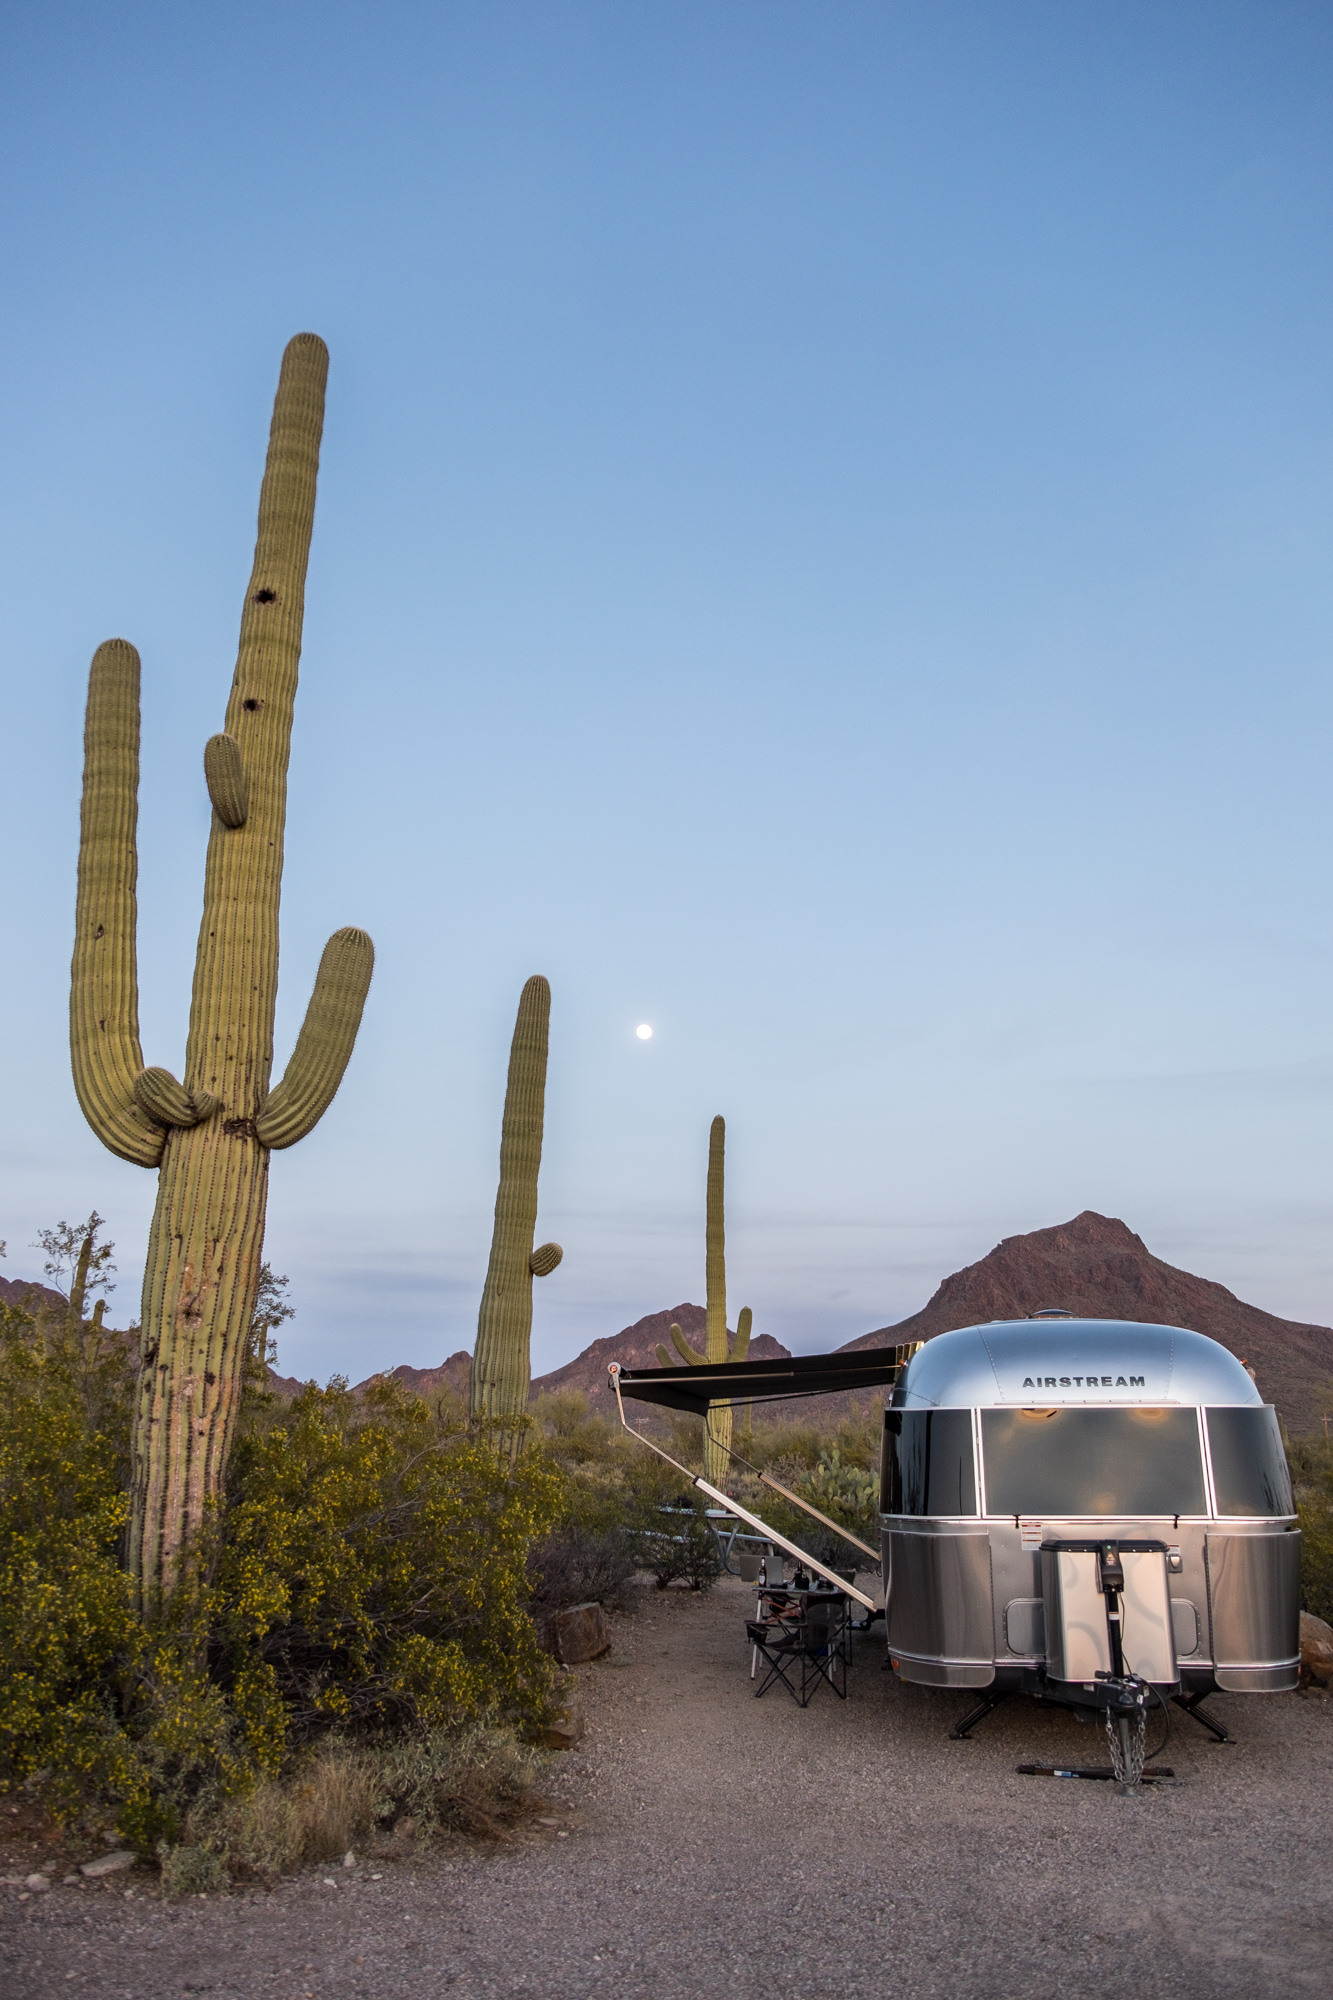 Wally the Airstream tucked away in the Gilbert Ray campground at Saguaro National Park in Arizona.